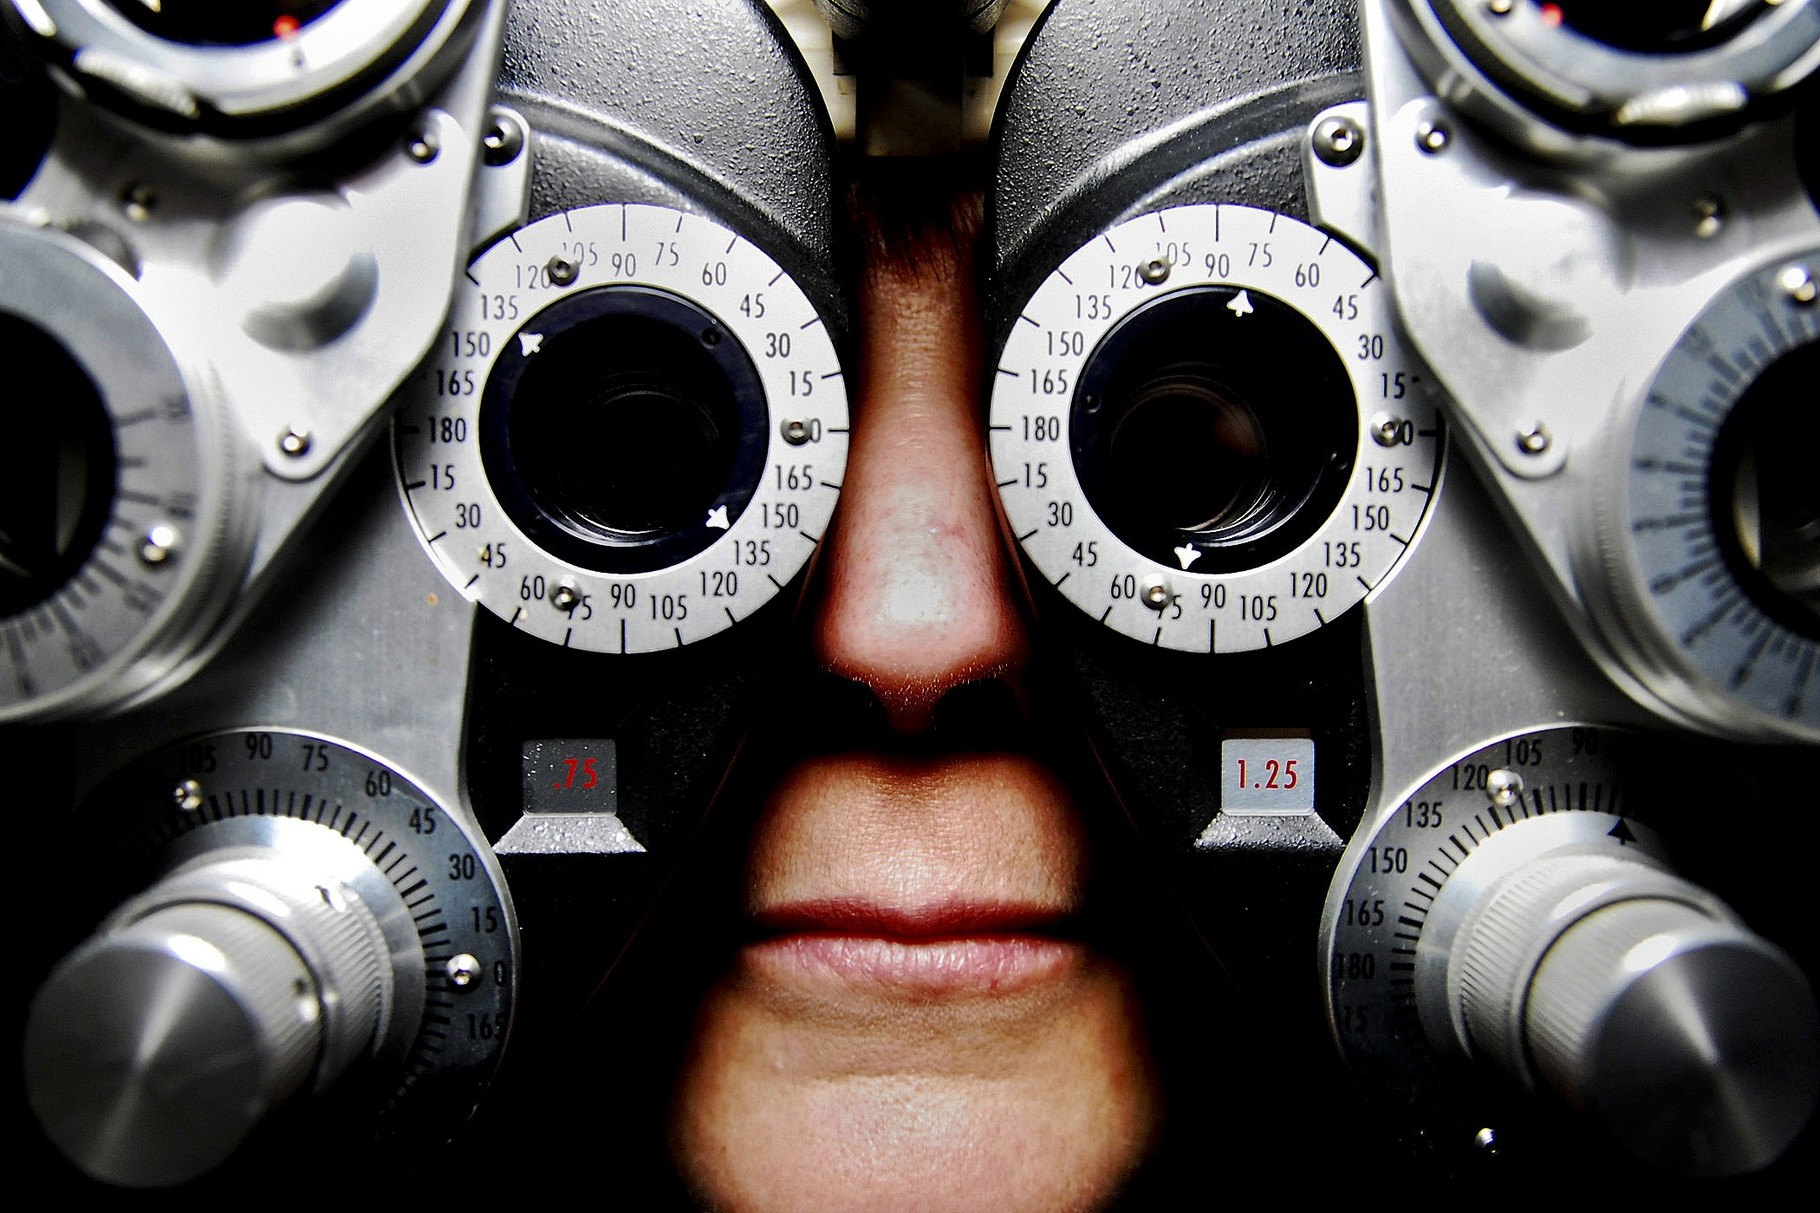 Clinical eye examinations